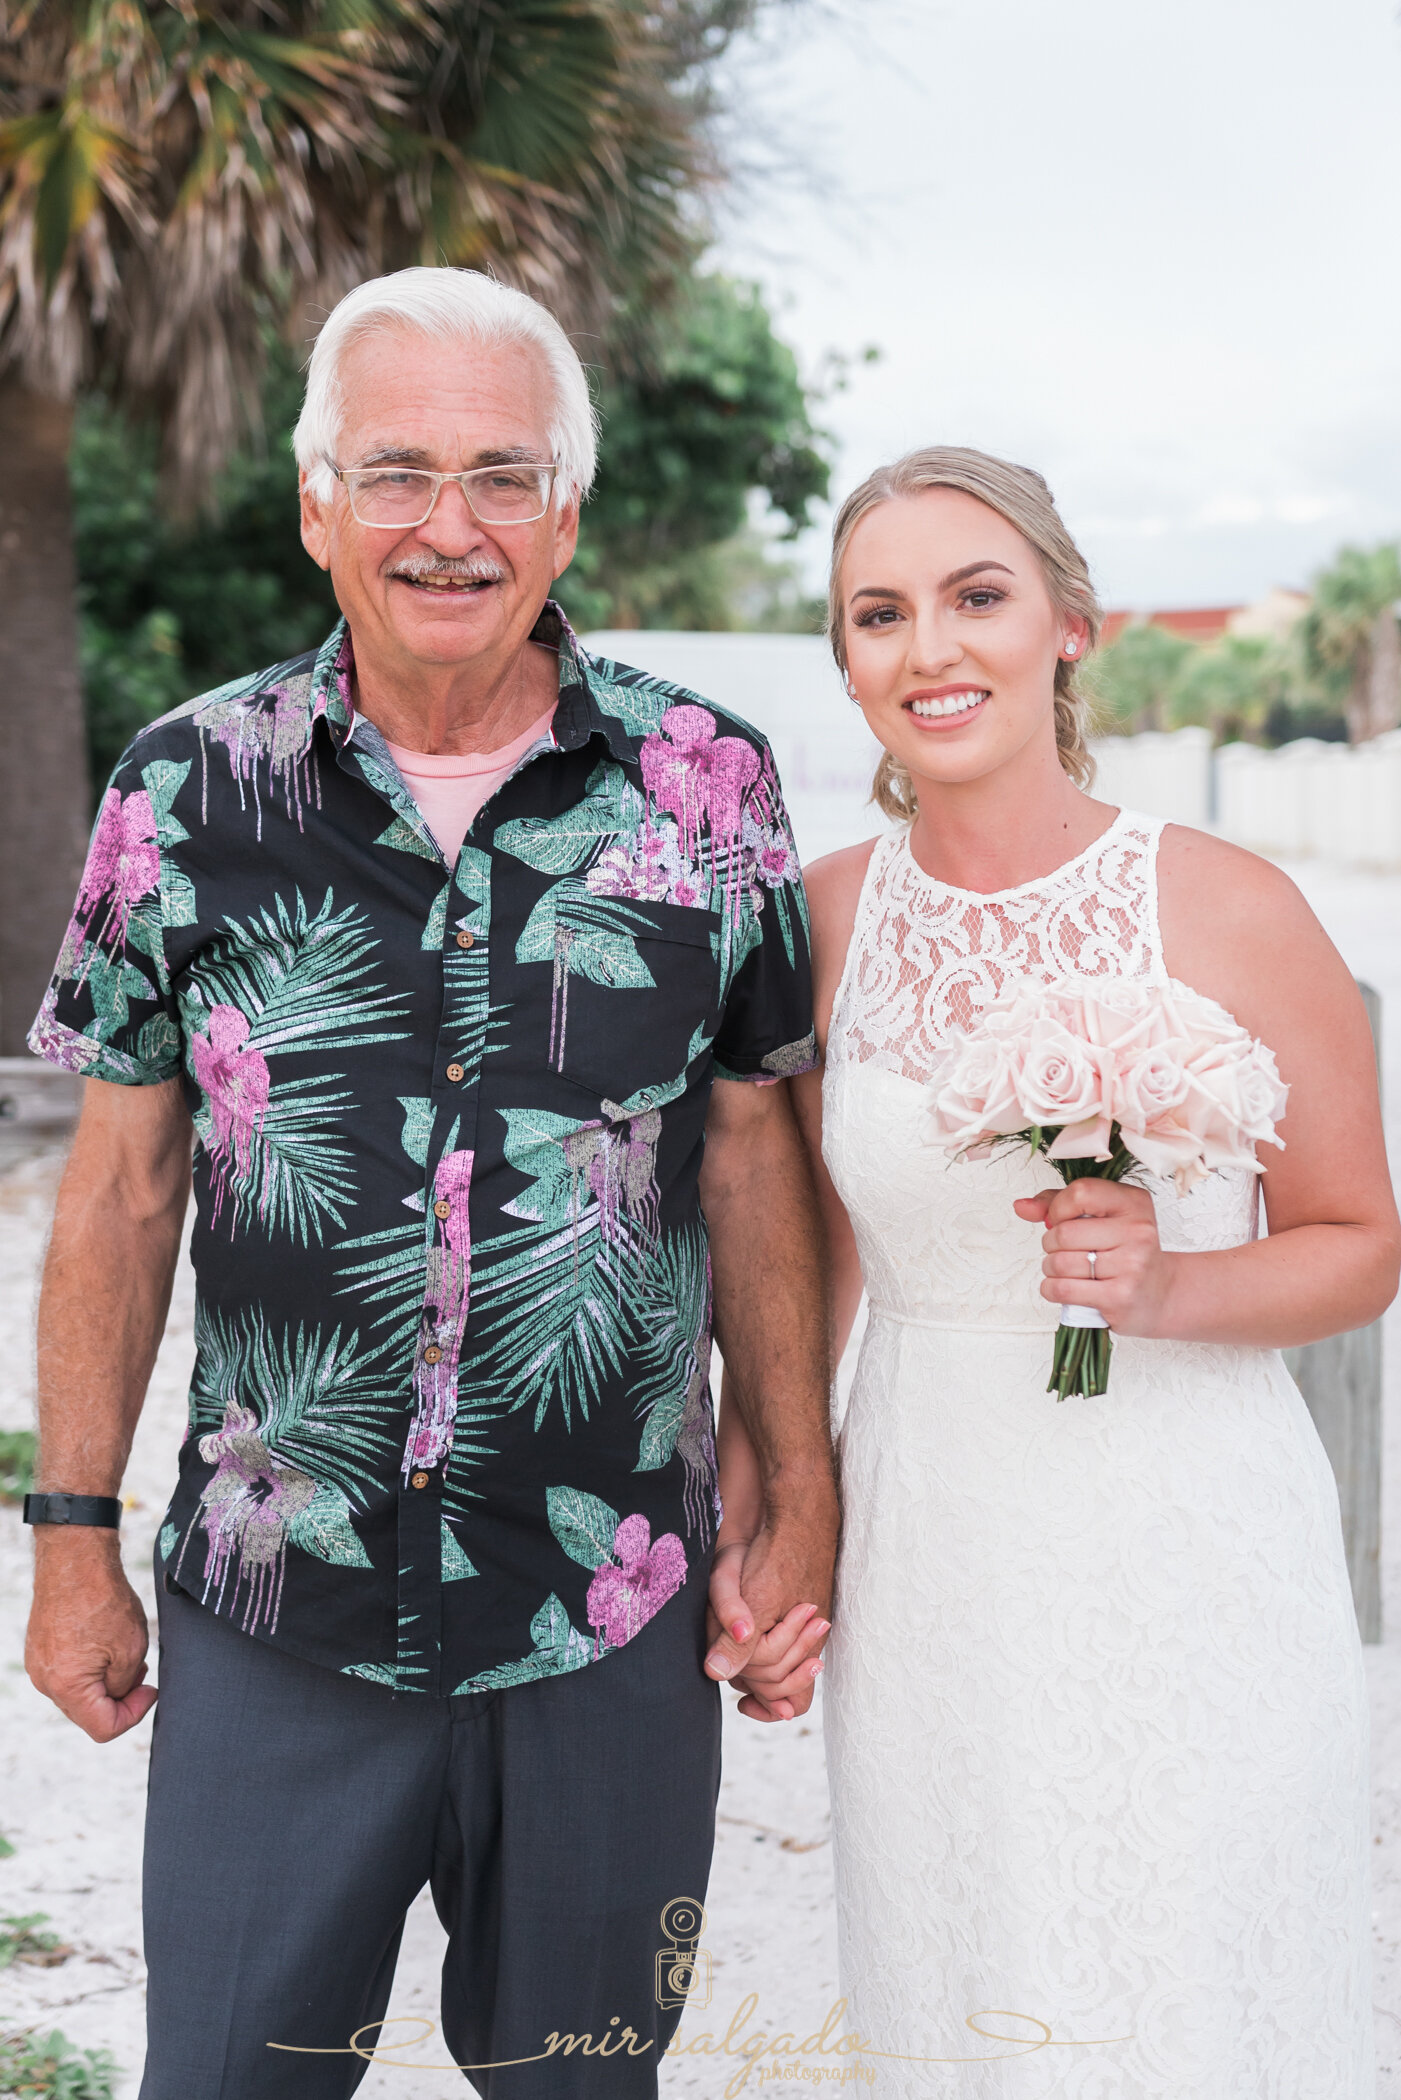 father-daughter-at-wedding, father-of-the-bride, walk-down-the-aisle, father-daughter-photography